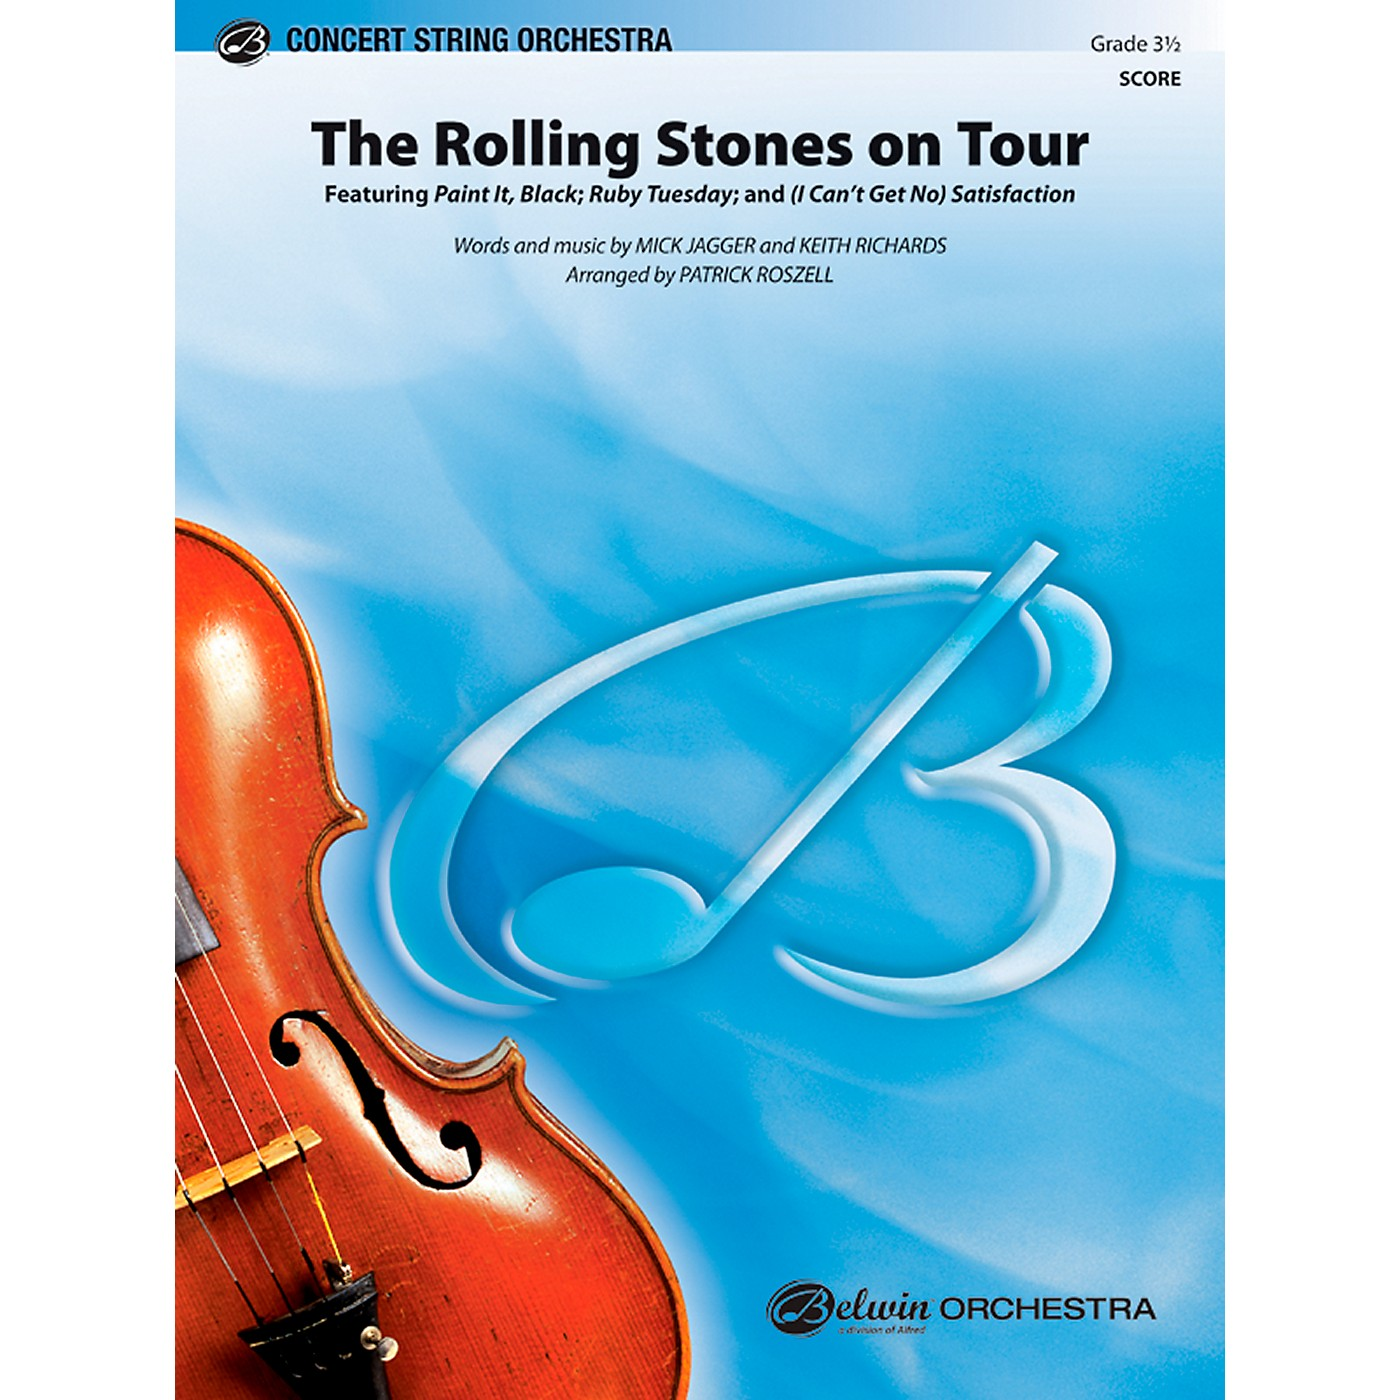 Alfred The Rolling Stones on Tour Concert String Orchestra Grade 3.5 Set thumbnail